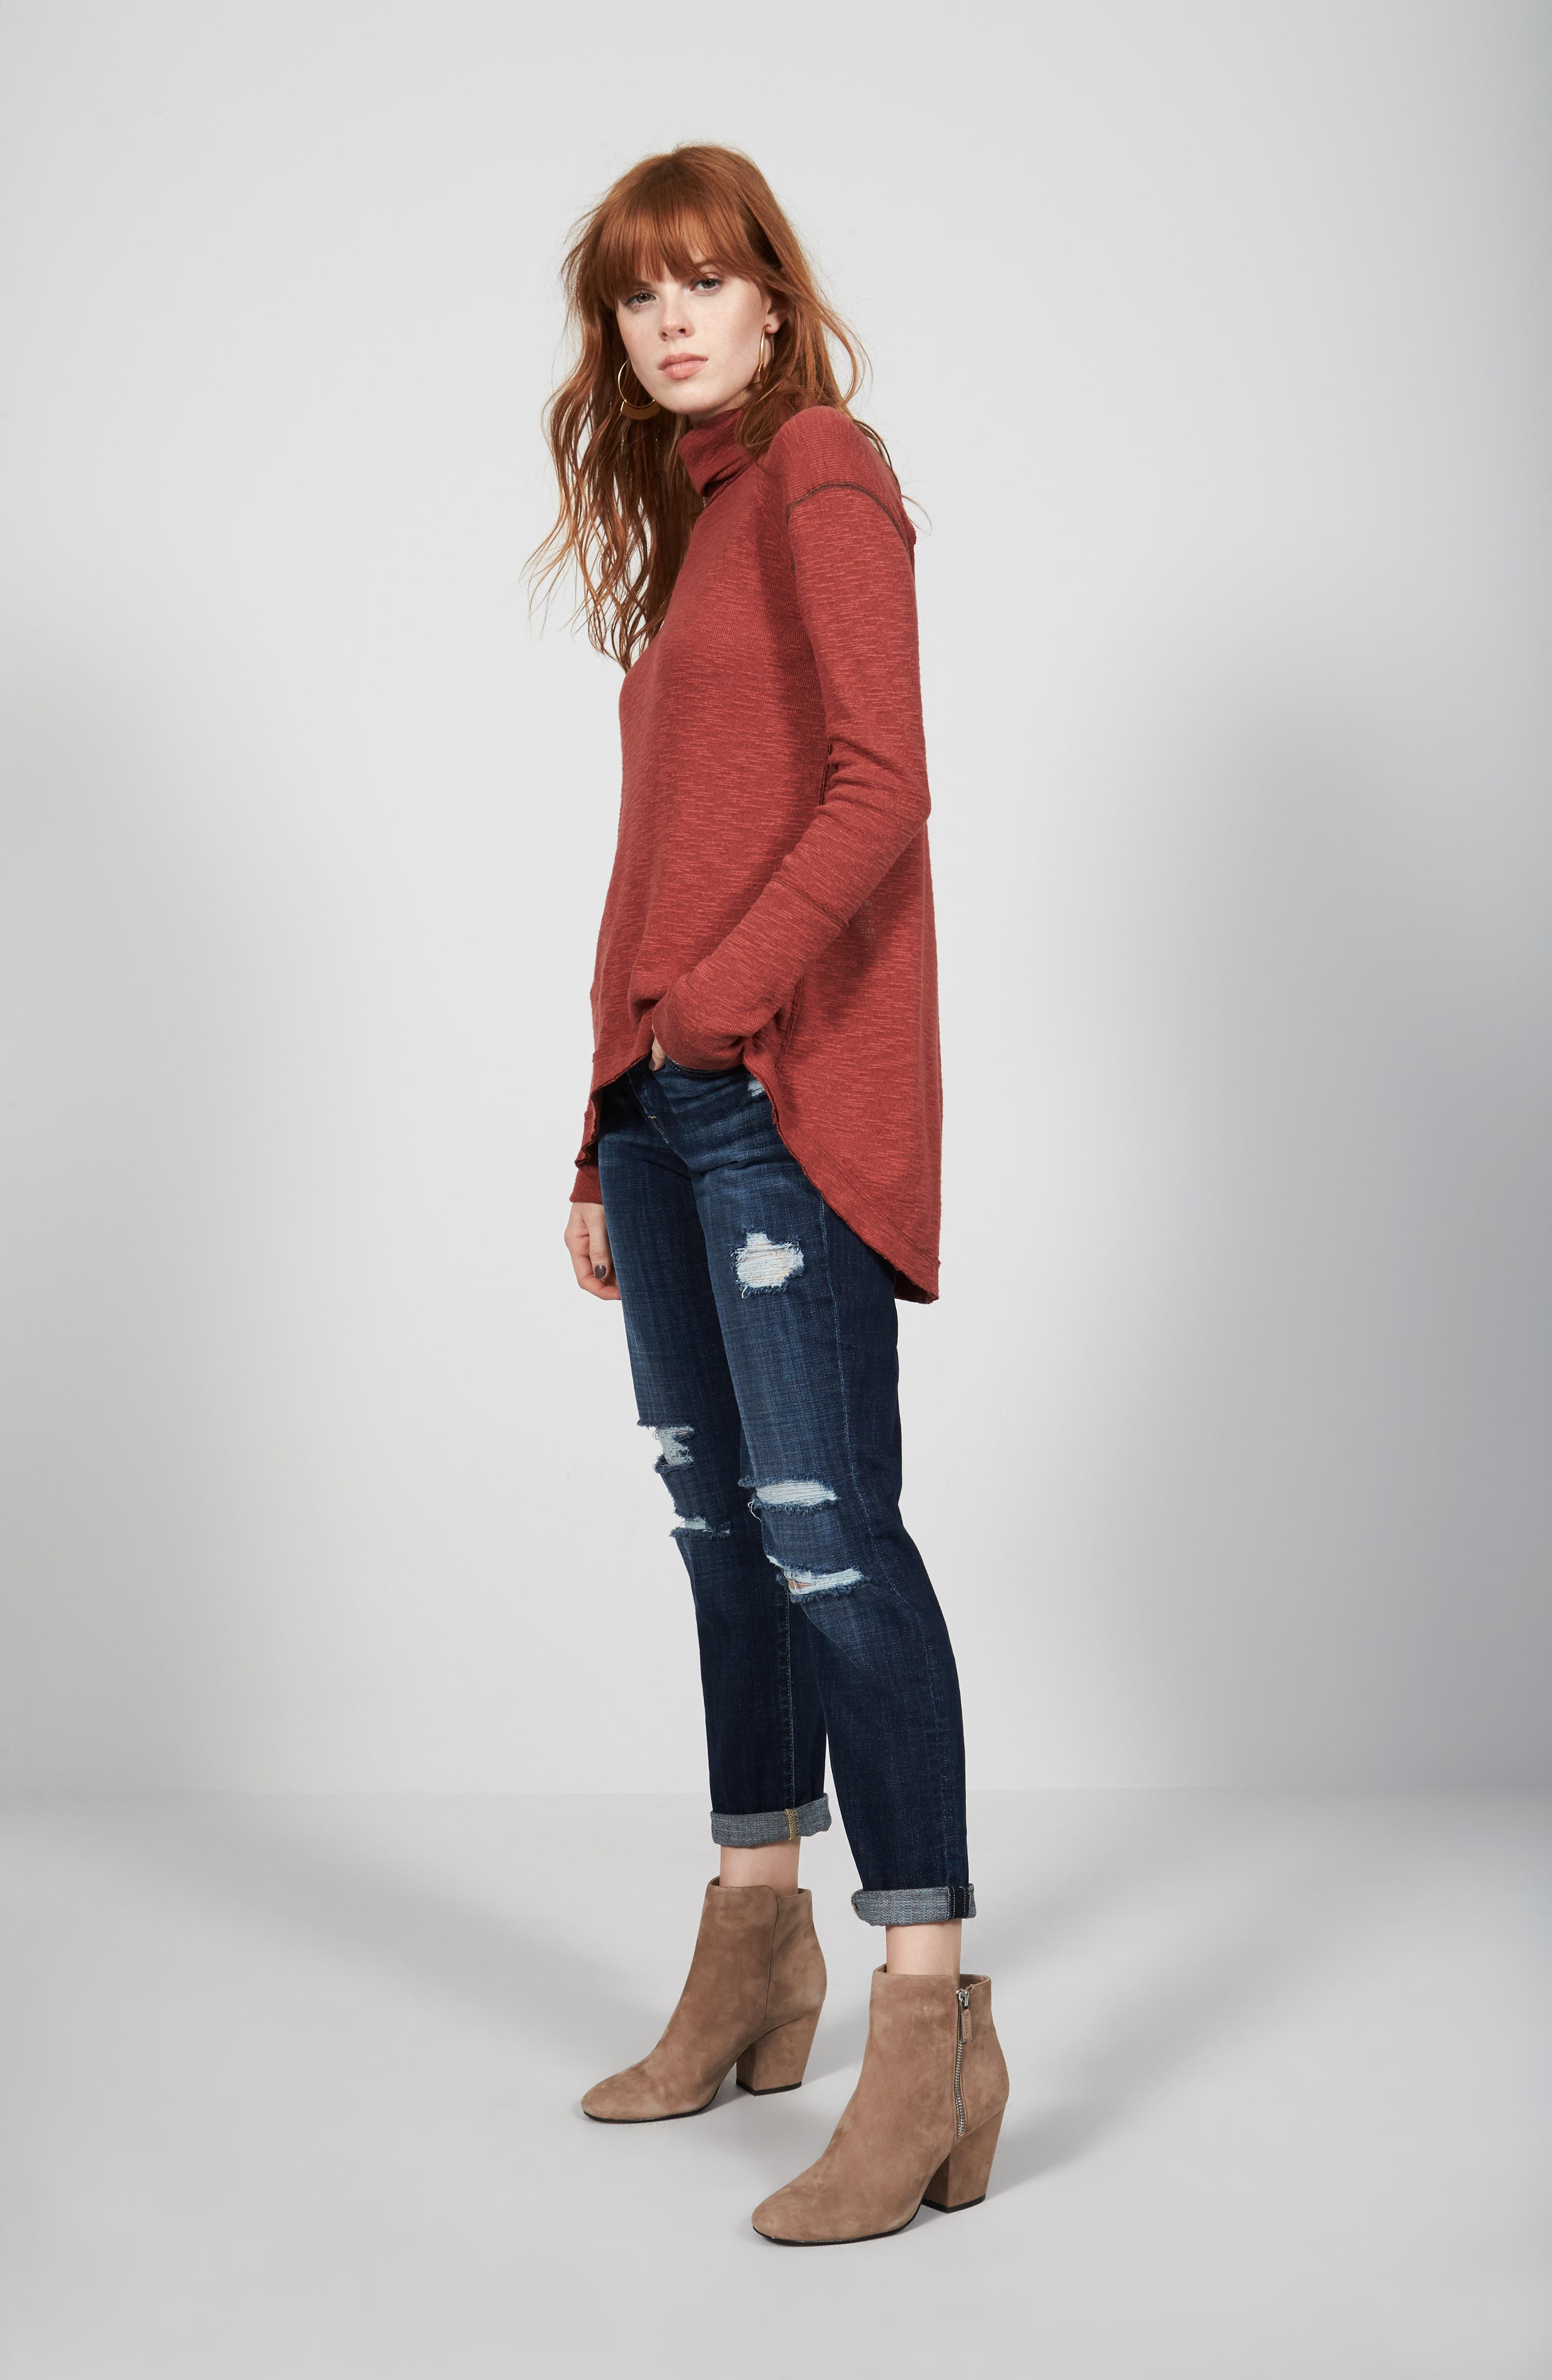 Free People Turtleneck & 7 For All Mankind® Jeans Outfit with Accessories